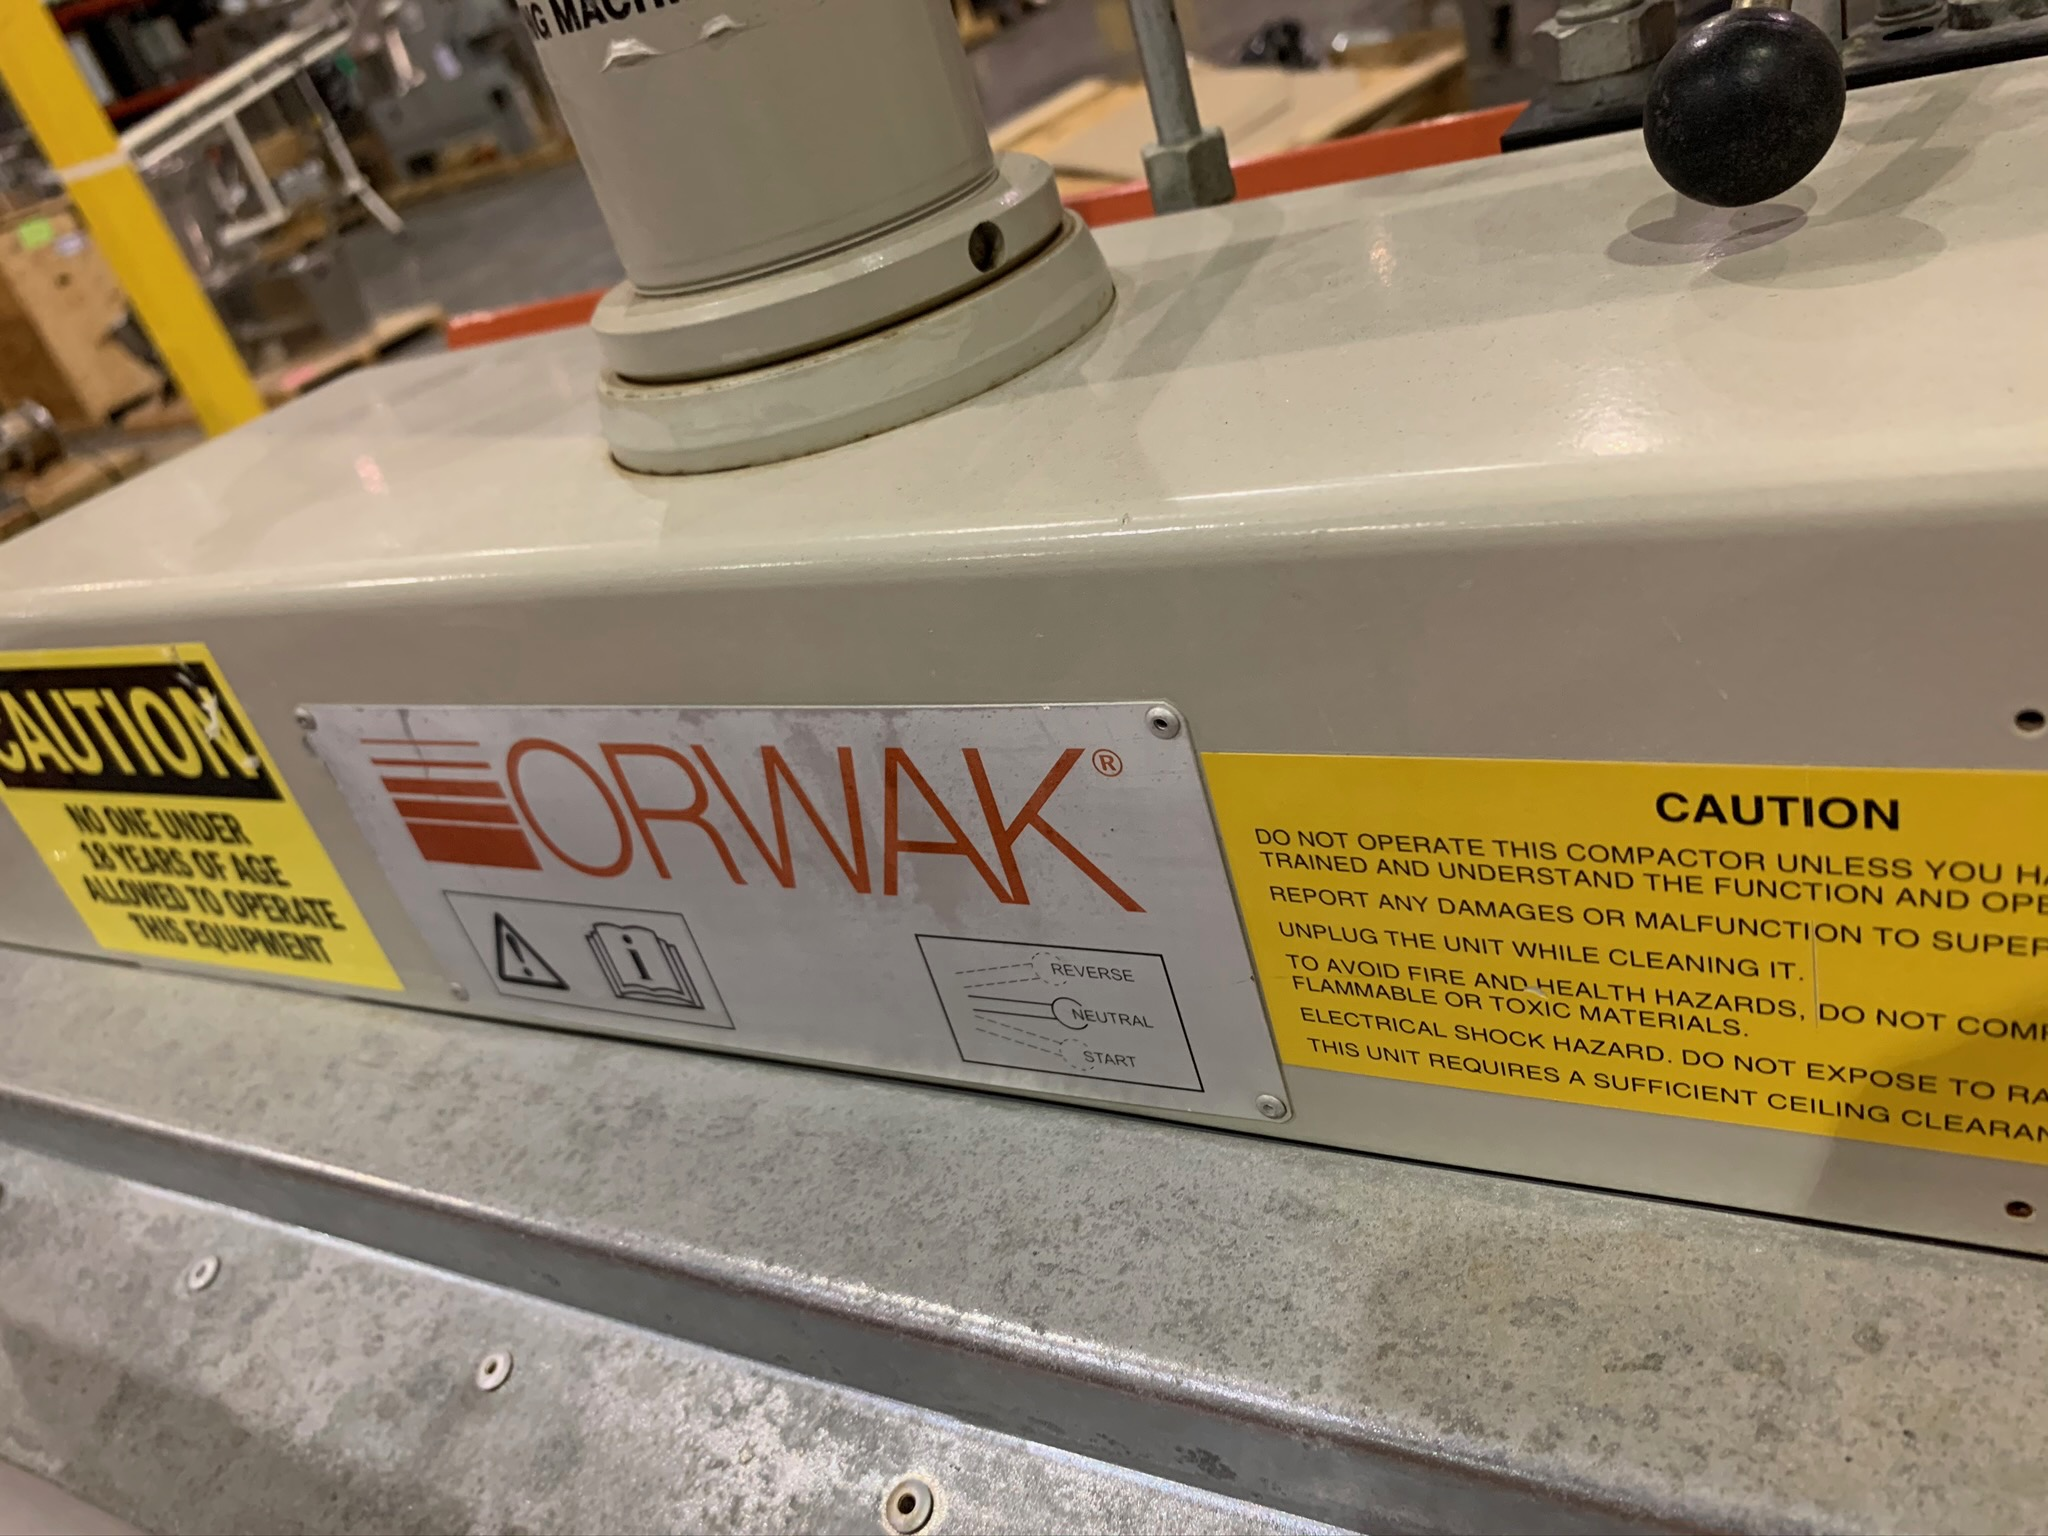 Orwak Compactor Model Compactor 5010 E S/N 103771 (Rigging Fee - $50) - Image 2 of 4